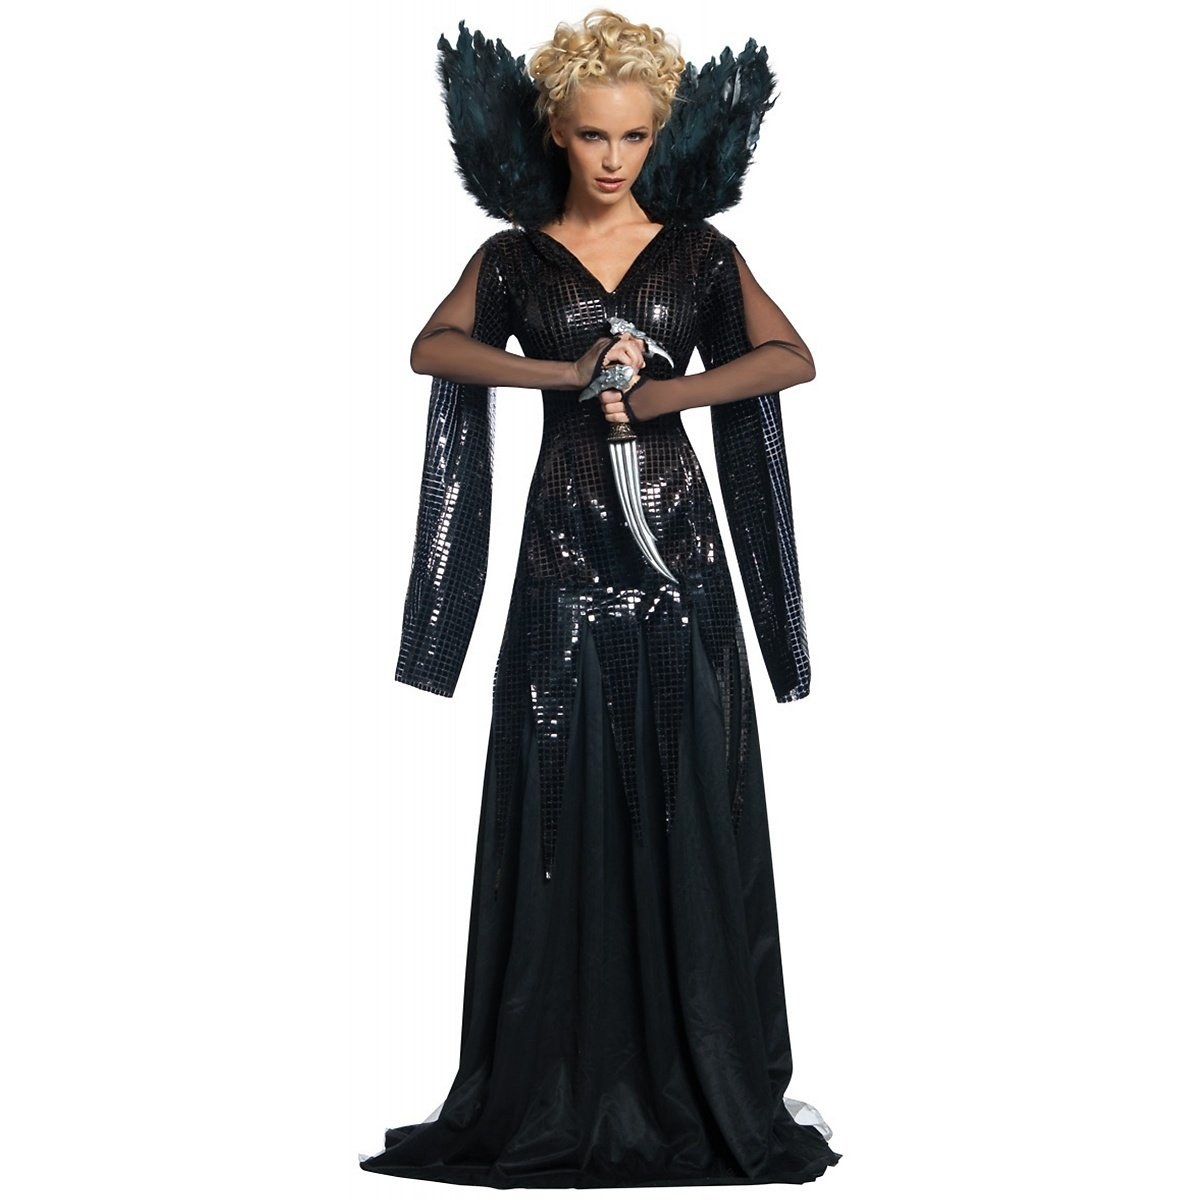 9f8cb21e03 Amazon.com  Deluxe Queen Ravenna Adult Costume - Large  Clothing